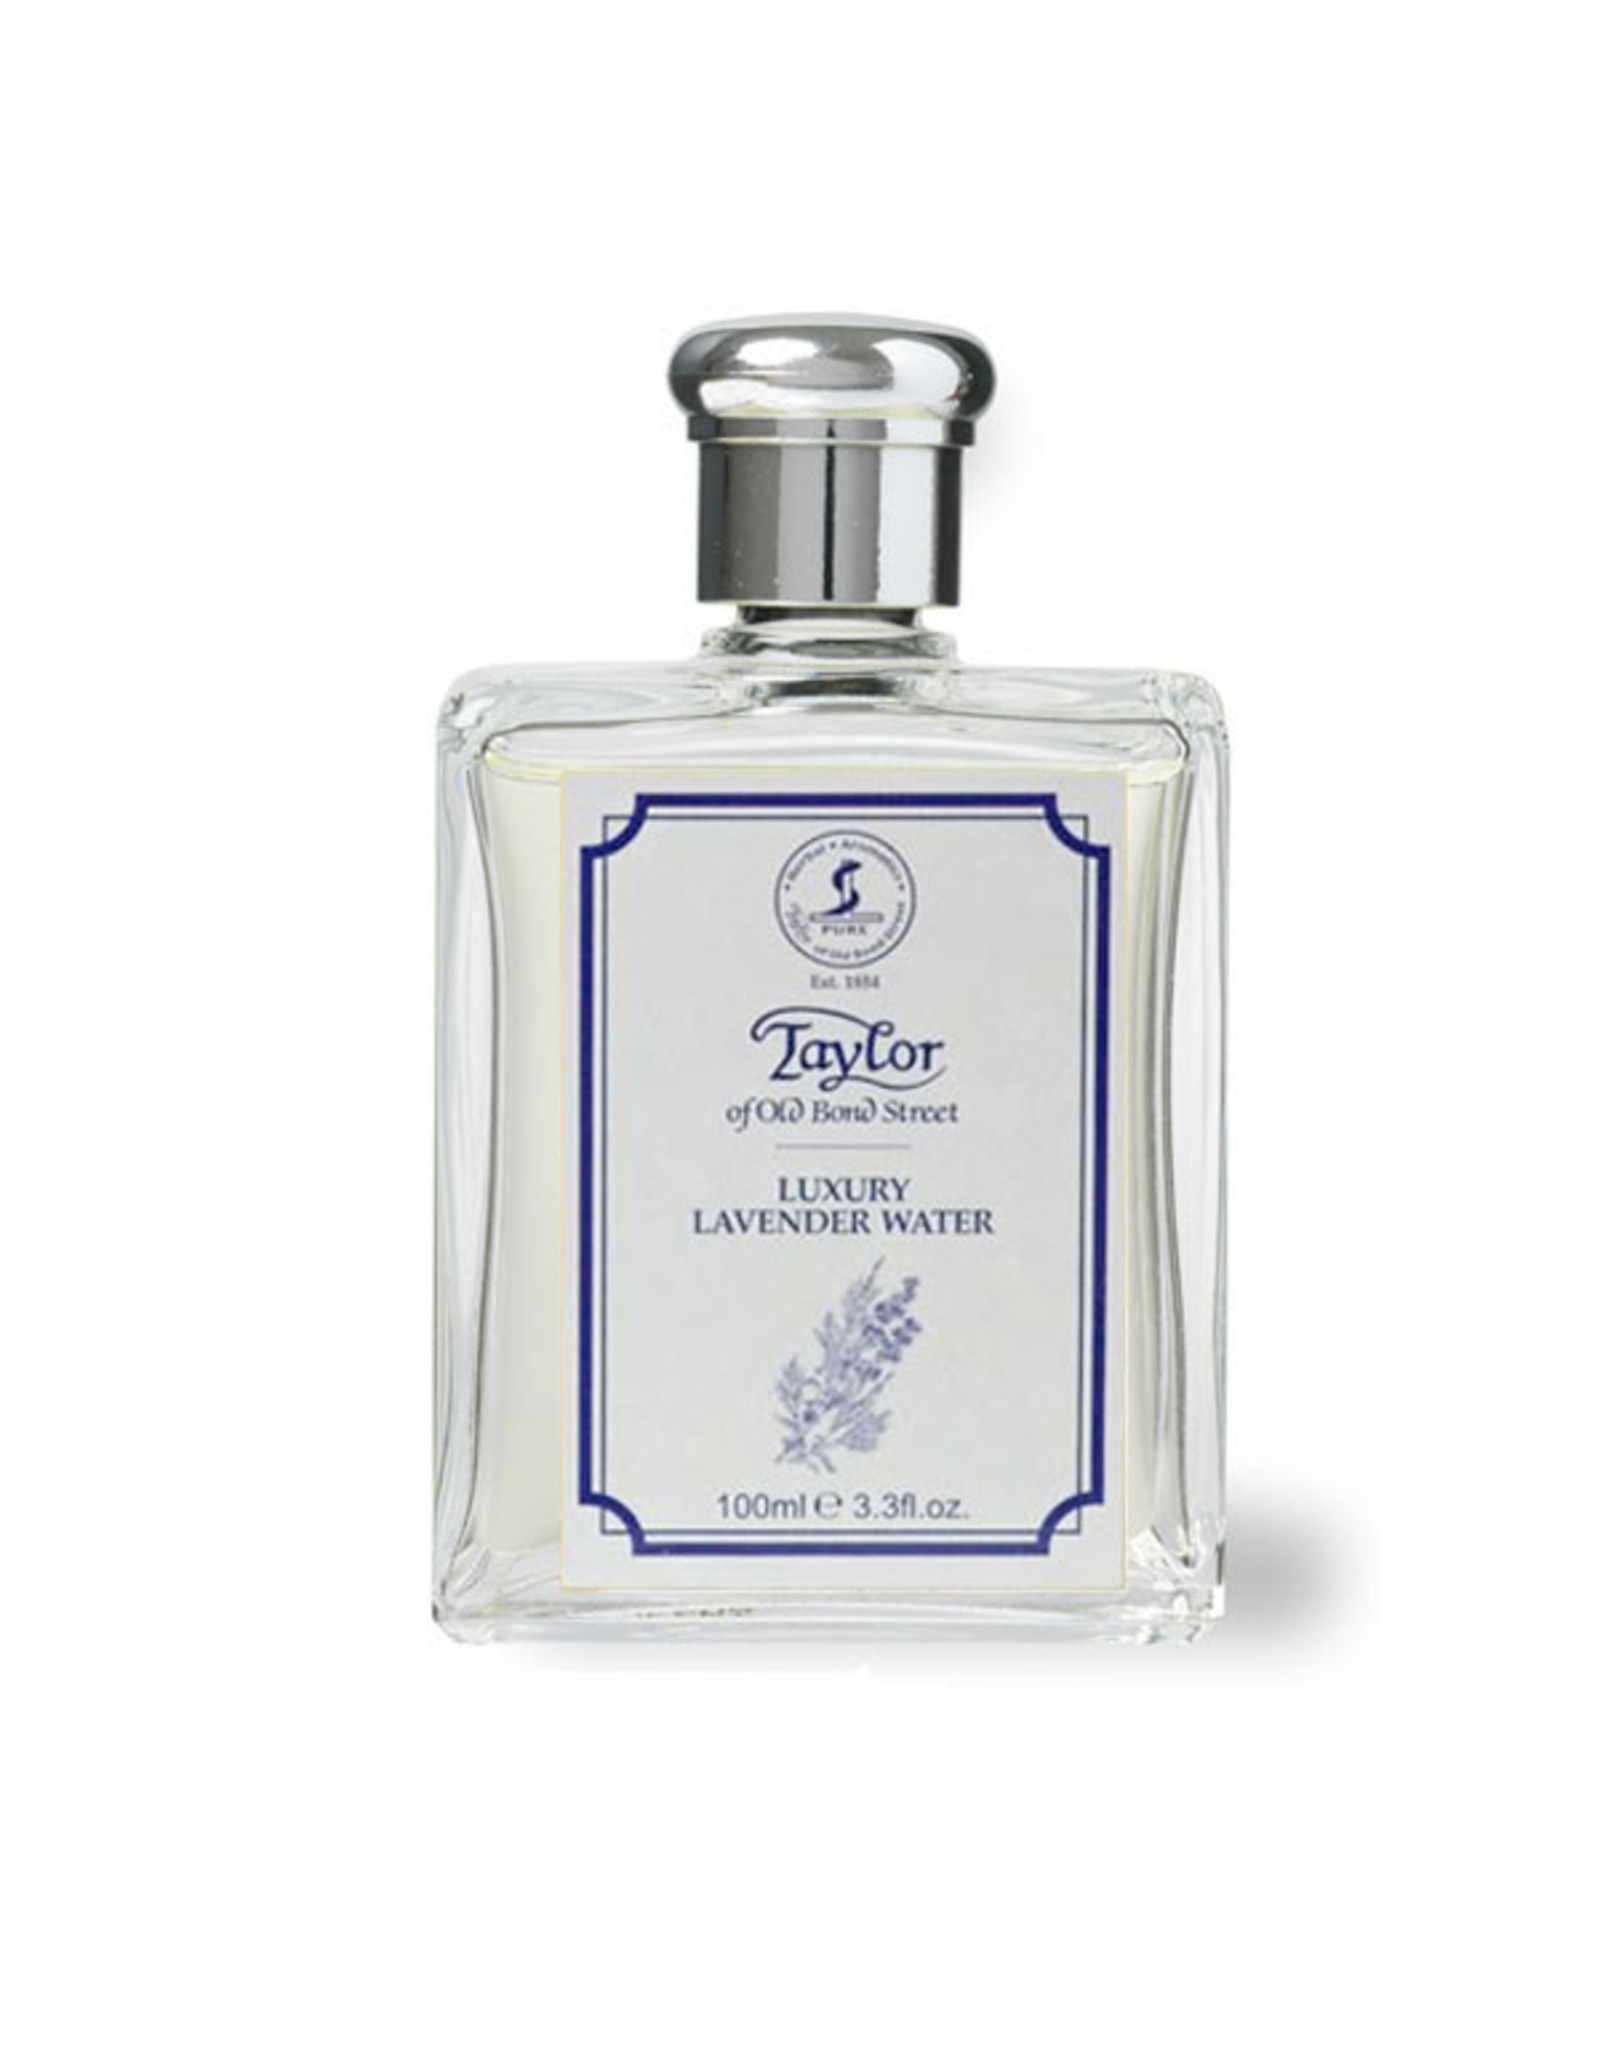 Taylor of Old Bond Street Lavender Water 100ml